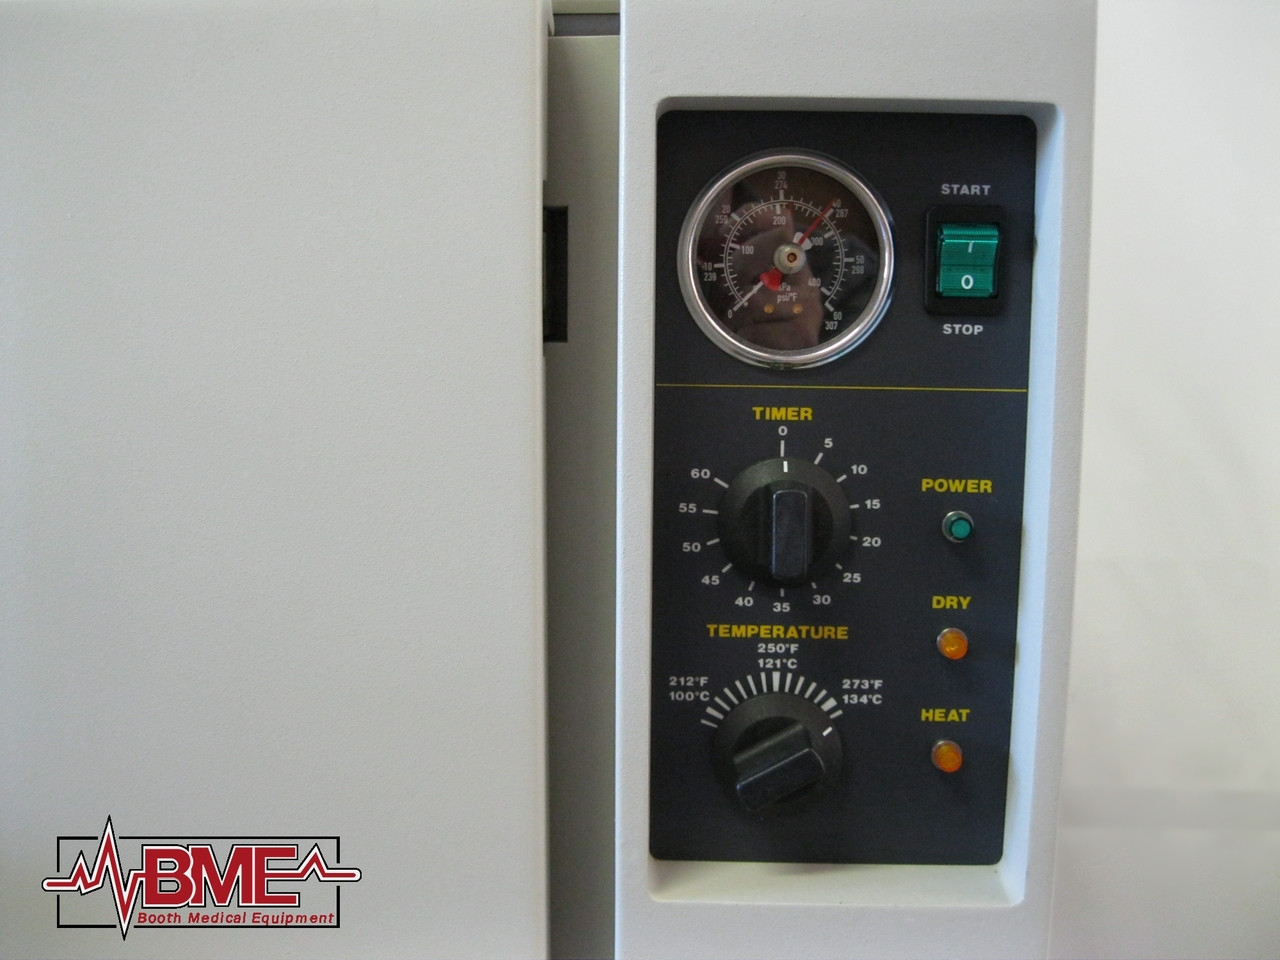 Booth Medical - Tuttnauer 3850M 230V Autoclave - Controls